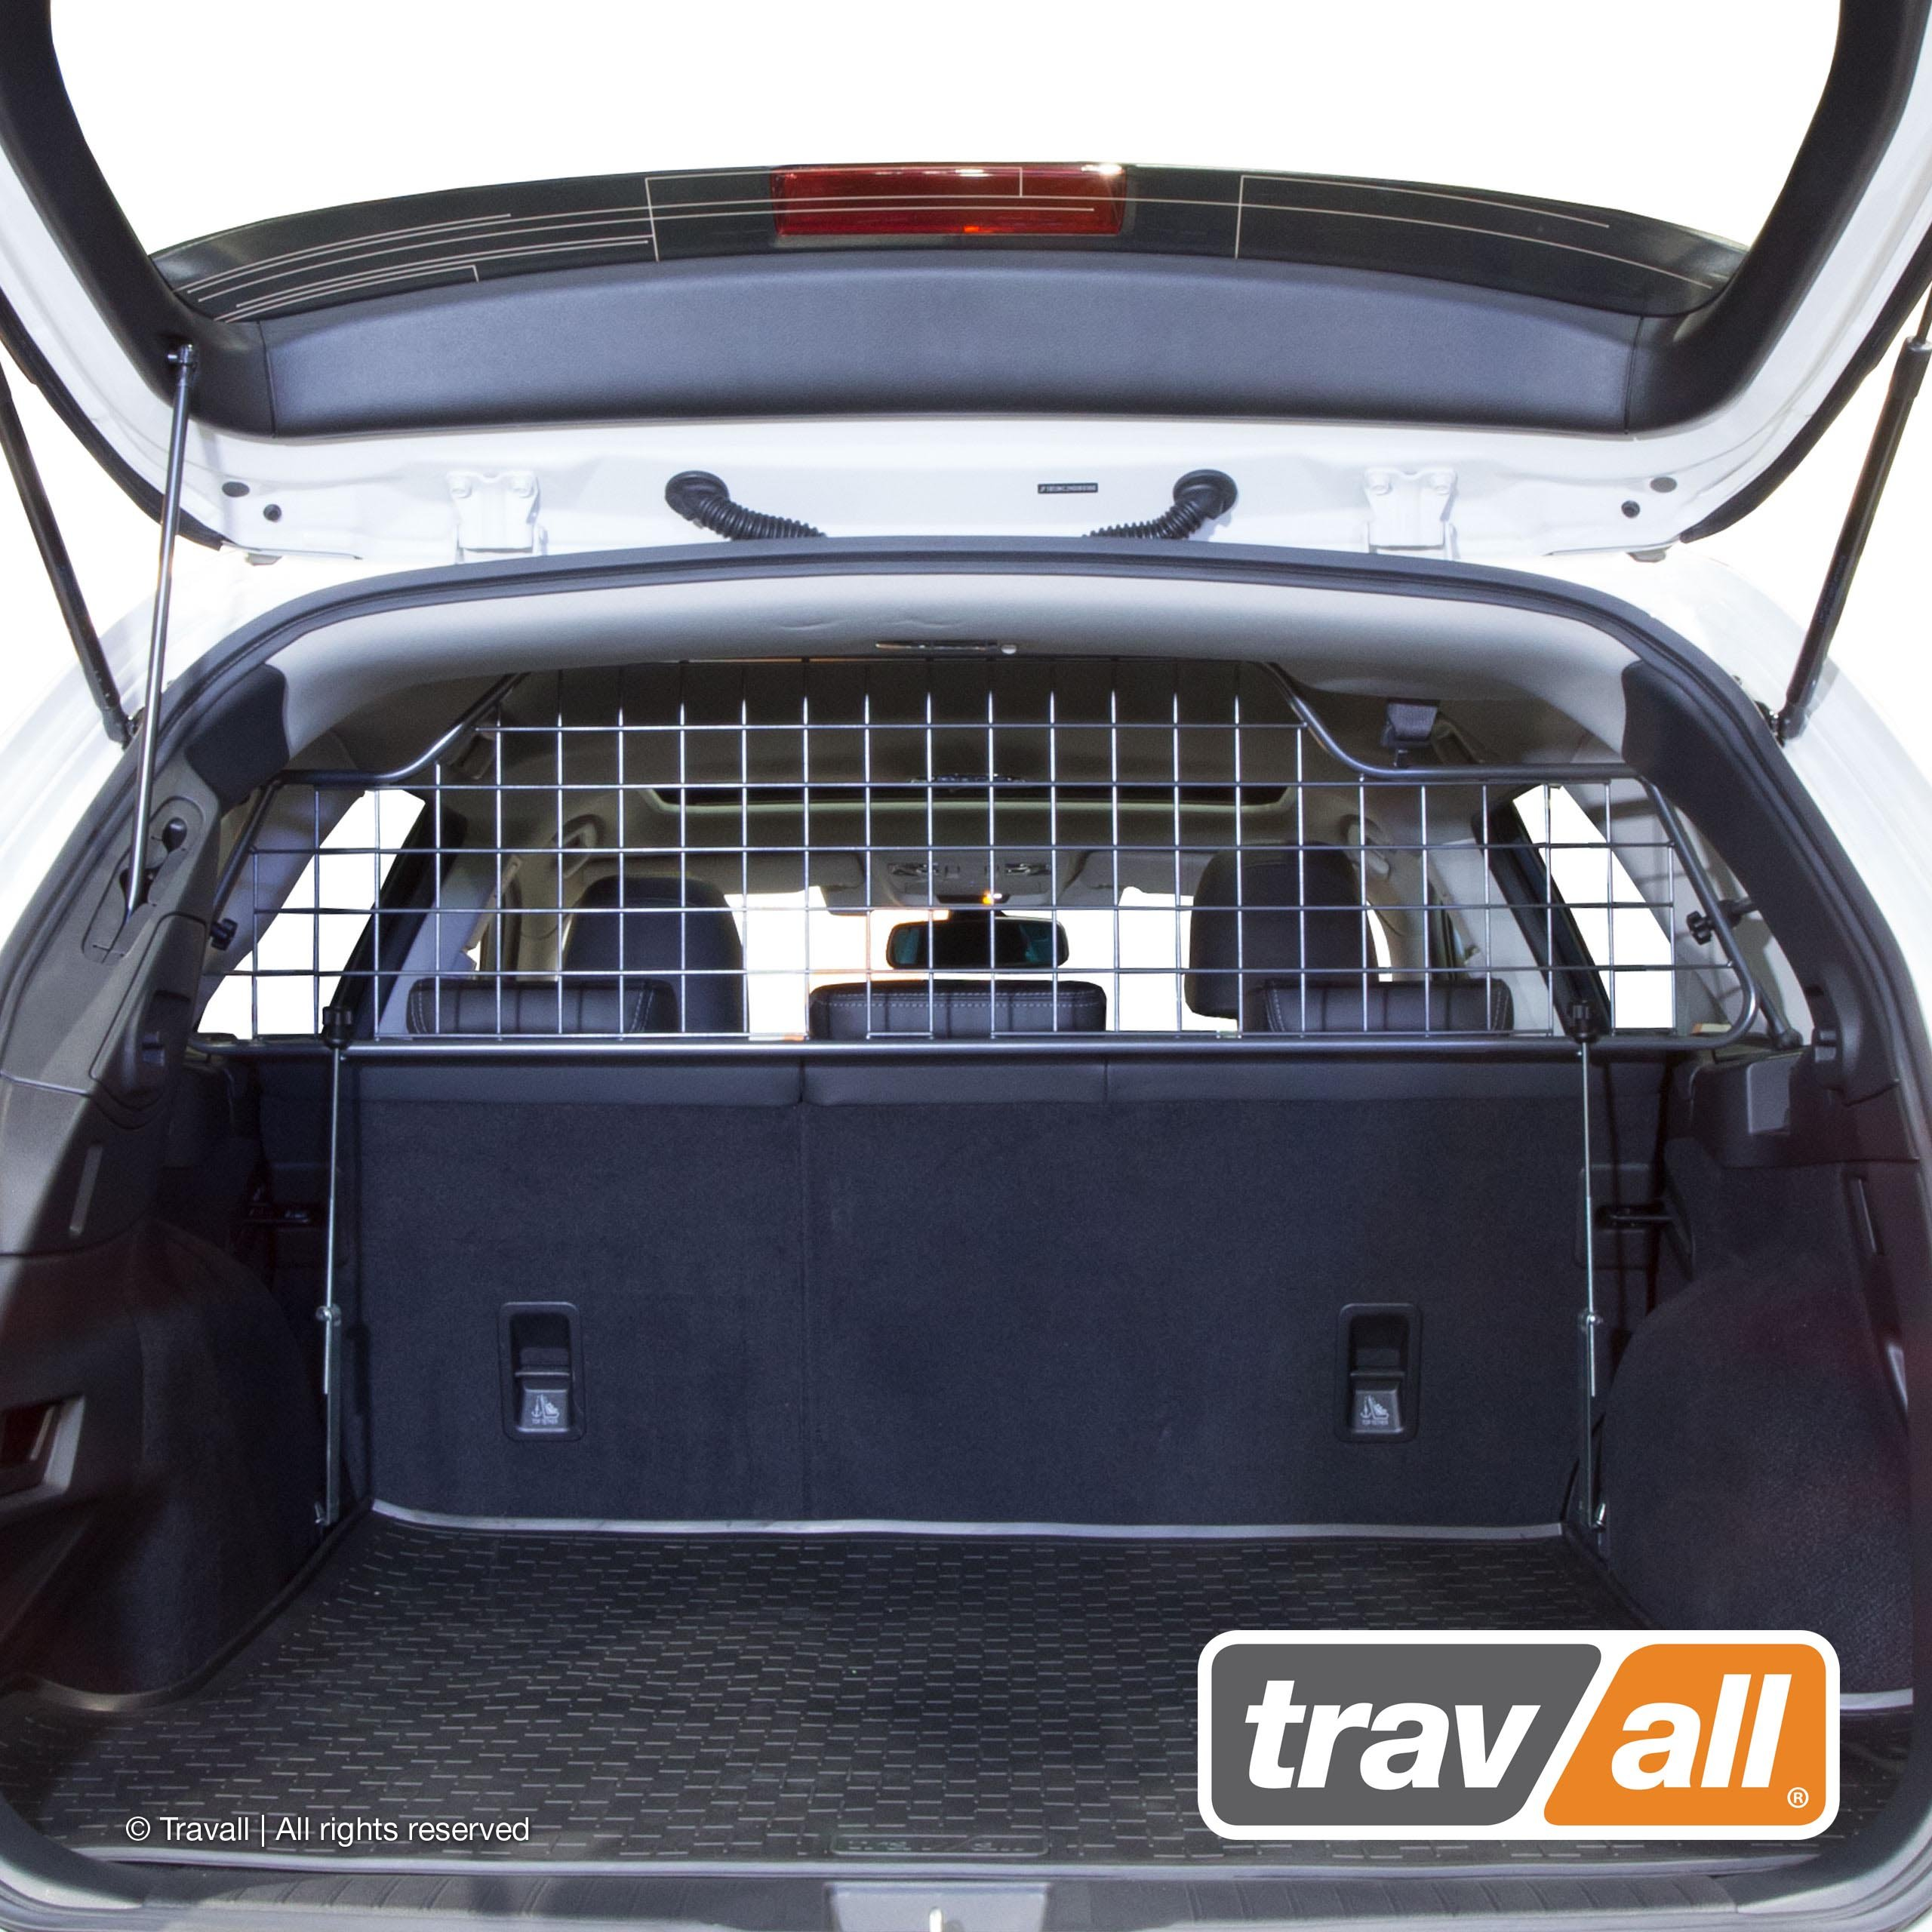 Travall Guard Compatible with Subaru Outback (2014-Current) TDG1476 - Rattle-Free Luggage and Pet Barrier by Travall